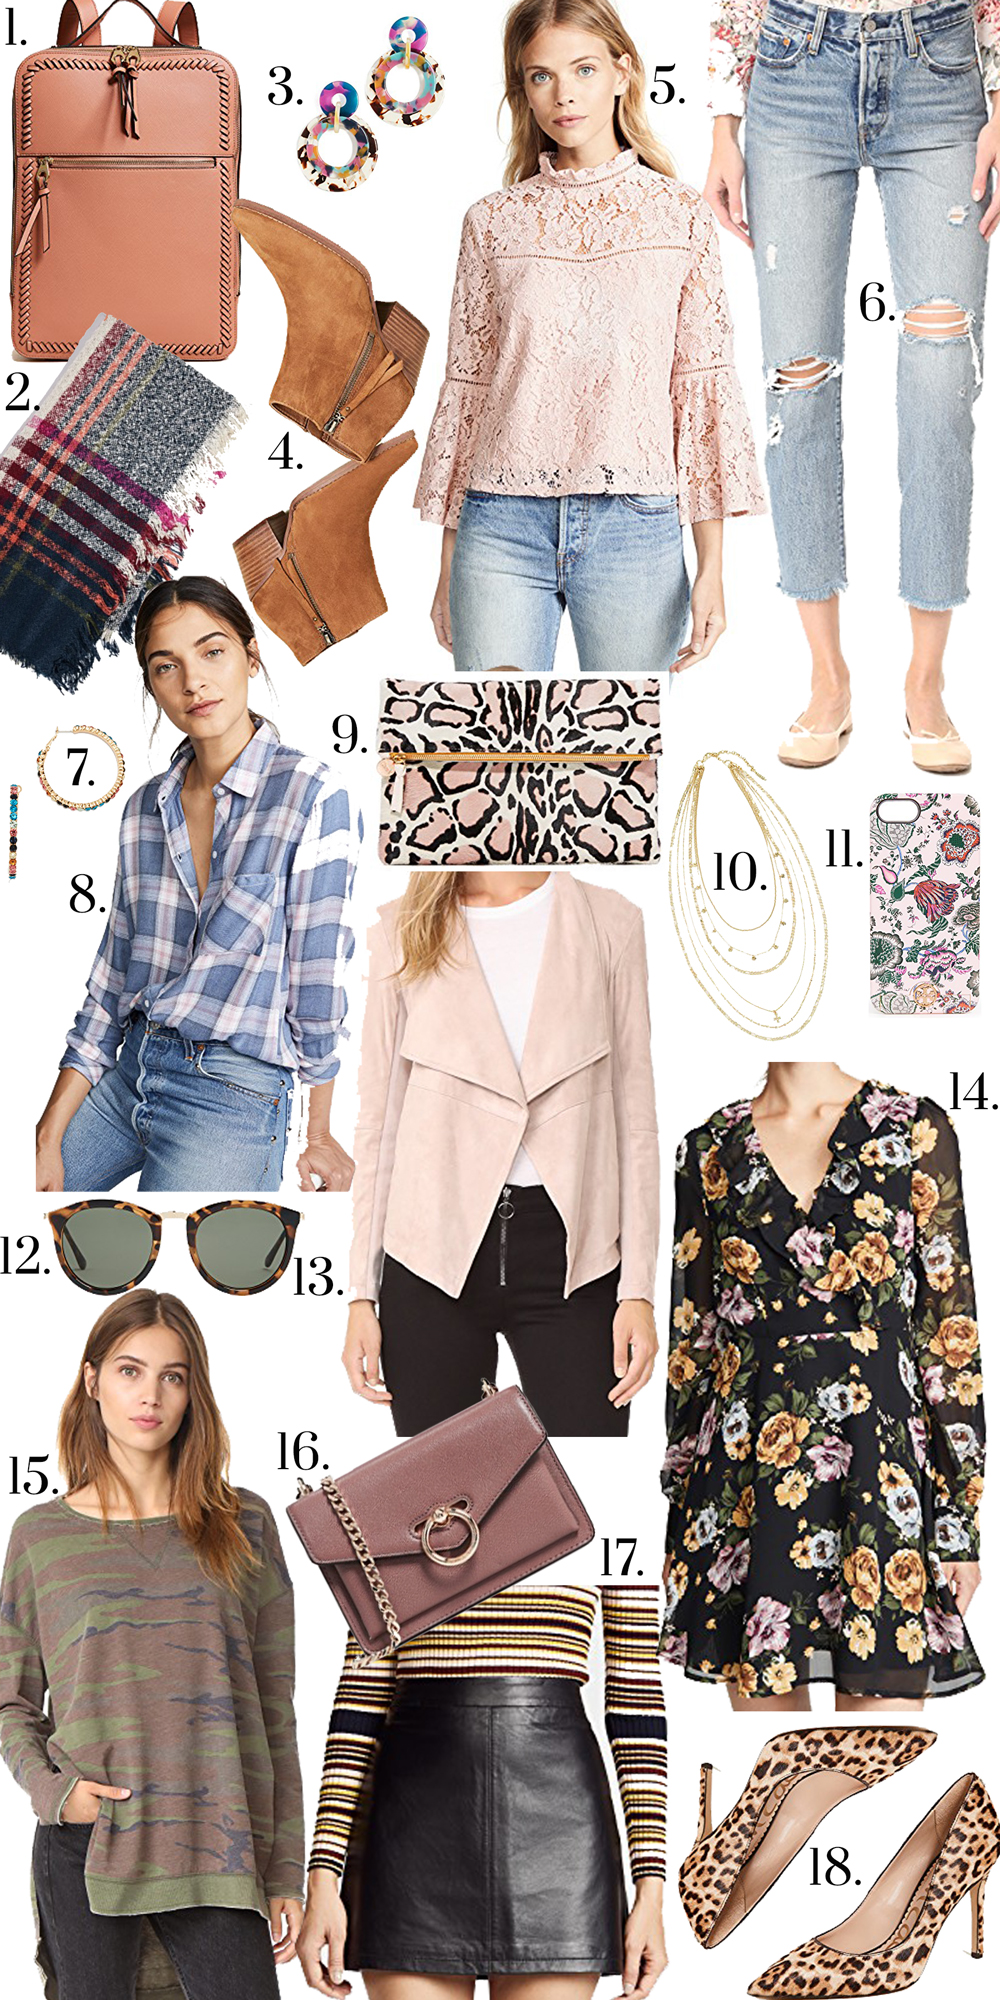 70c82e94984 What to Buy from the Shopbop Sale! Get up to 25% off! - Glitter ...